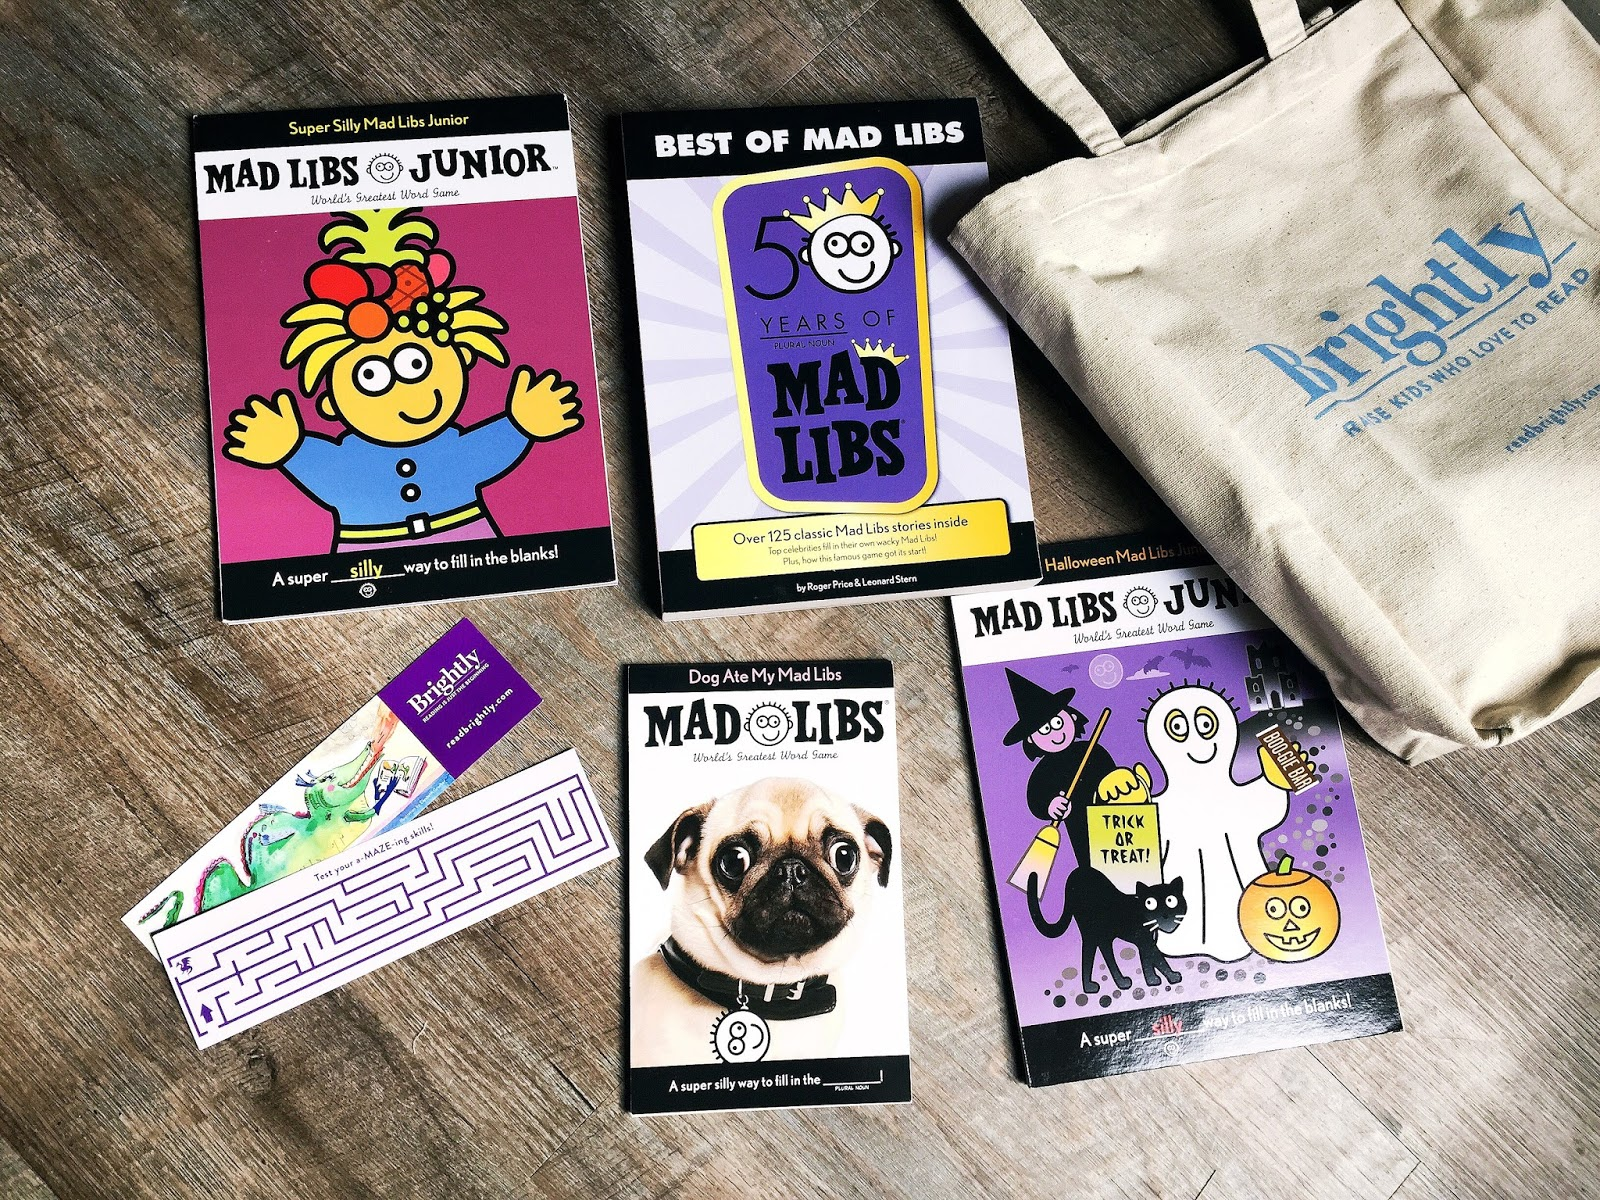 Struggling to get your kid to fall in love with reading?  Make reading fun for your kids using Mad Libs!